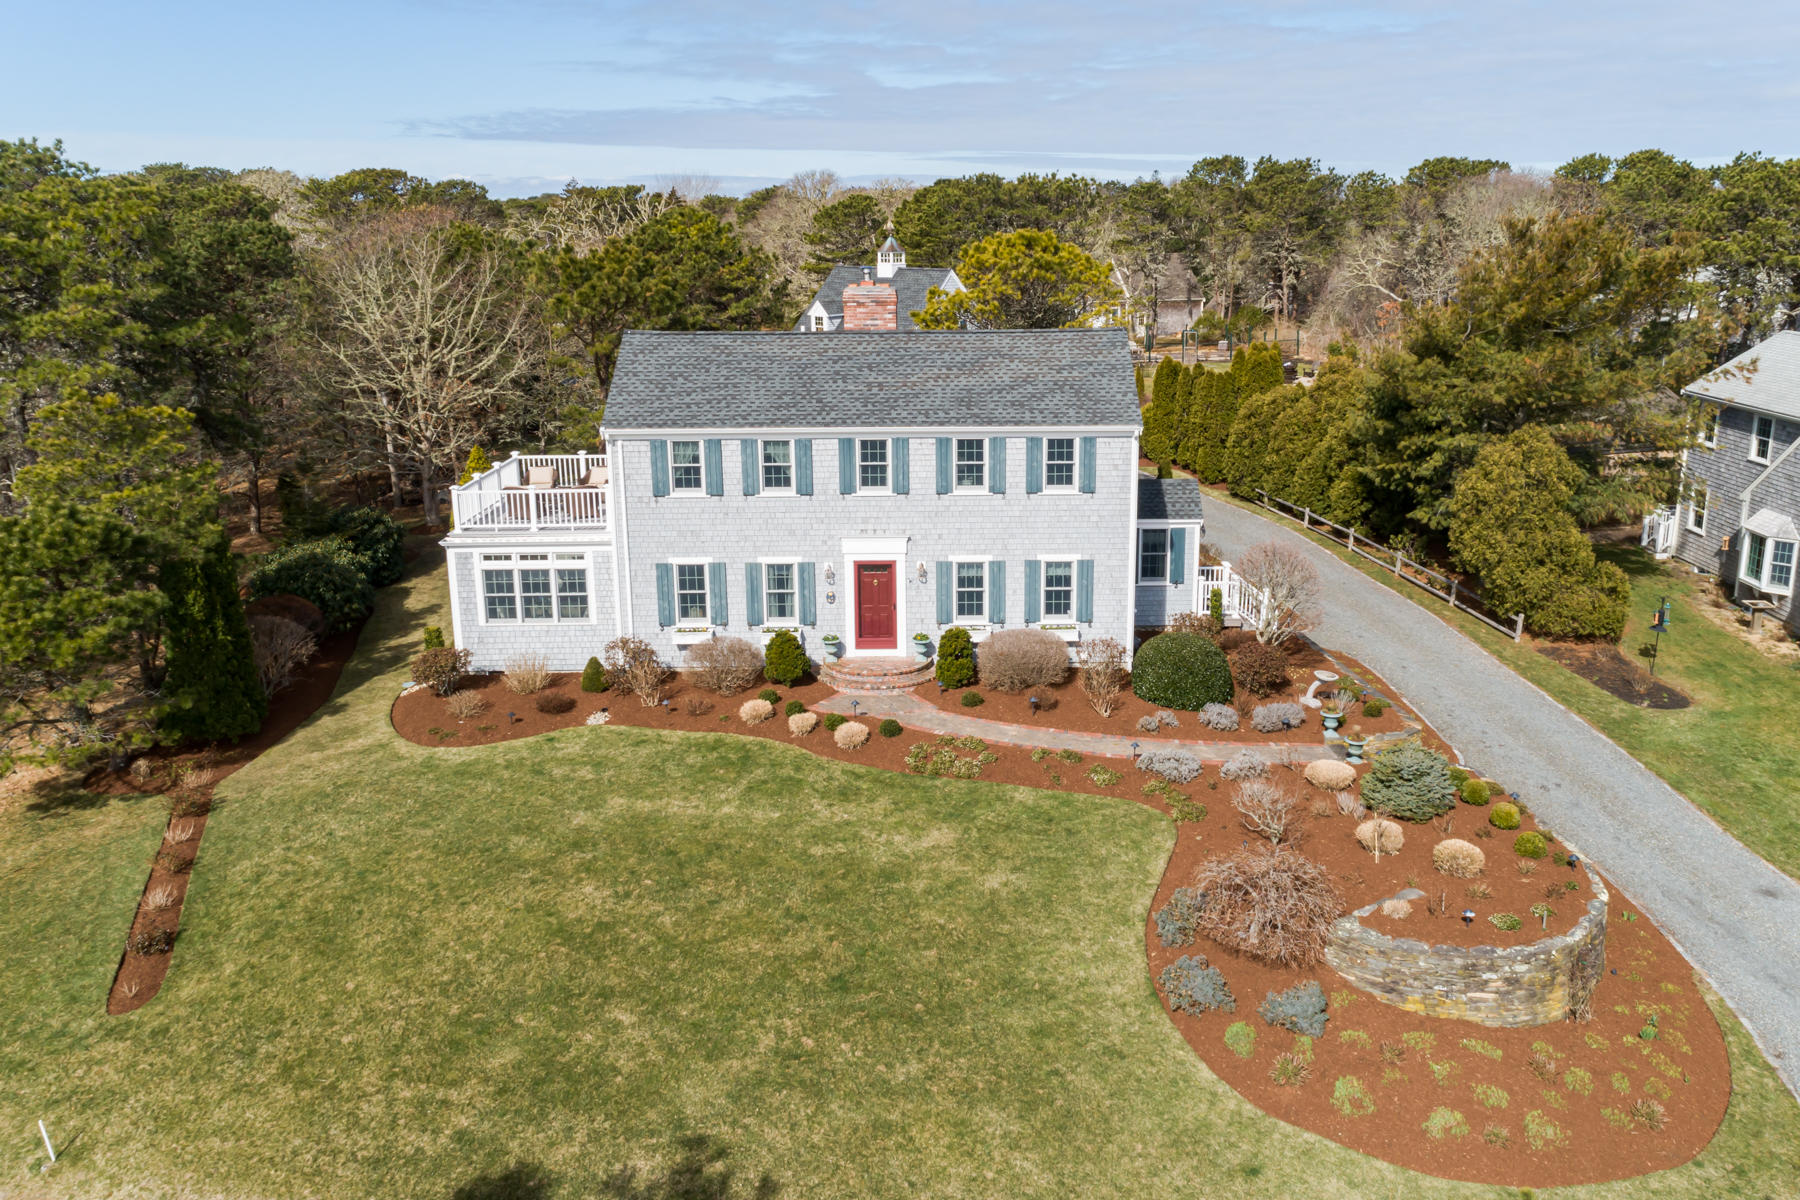 click to view more details 40 Gillis Road, South Chatham, MA 02659